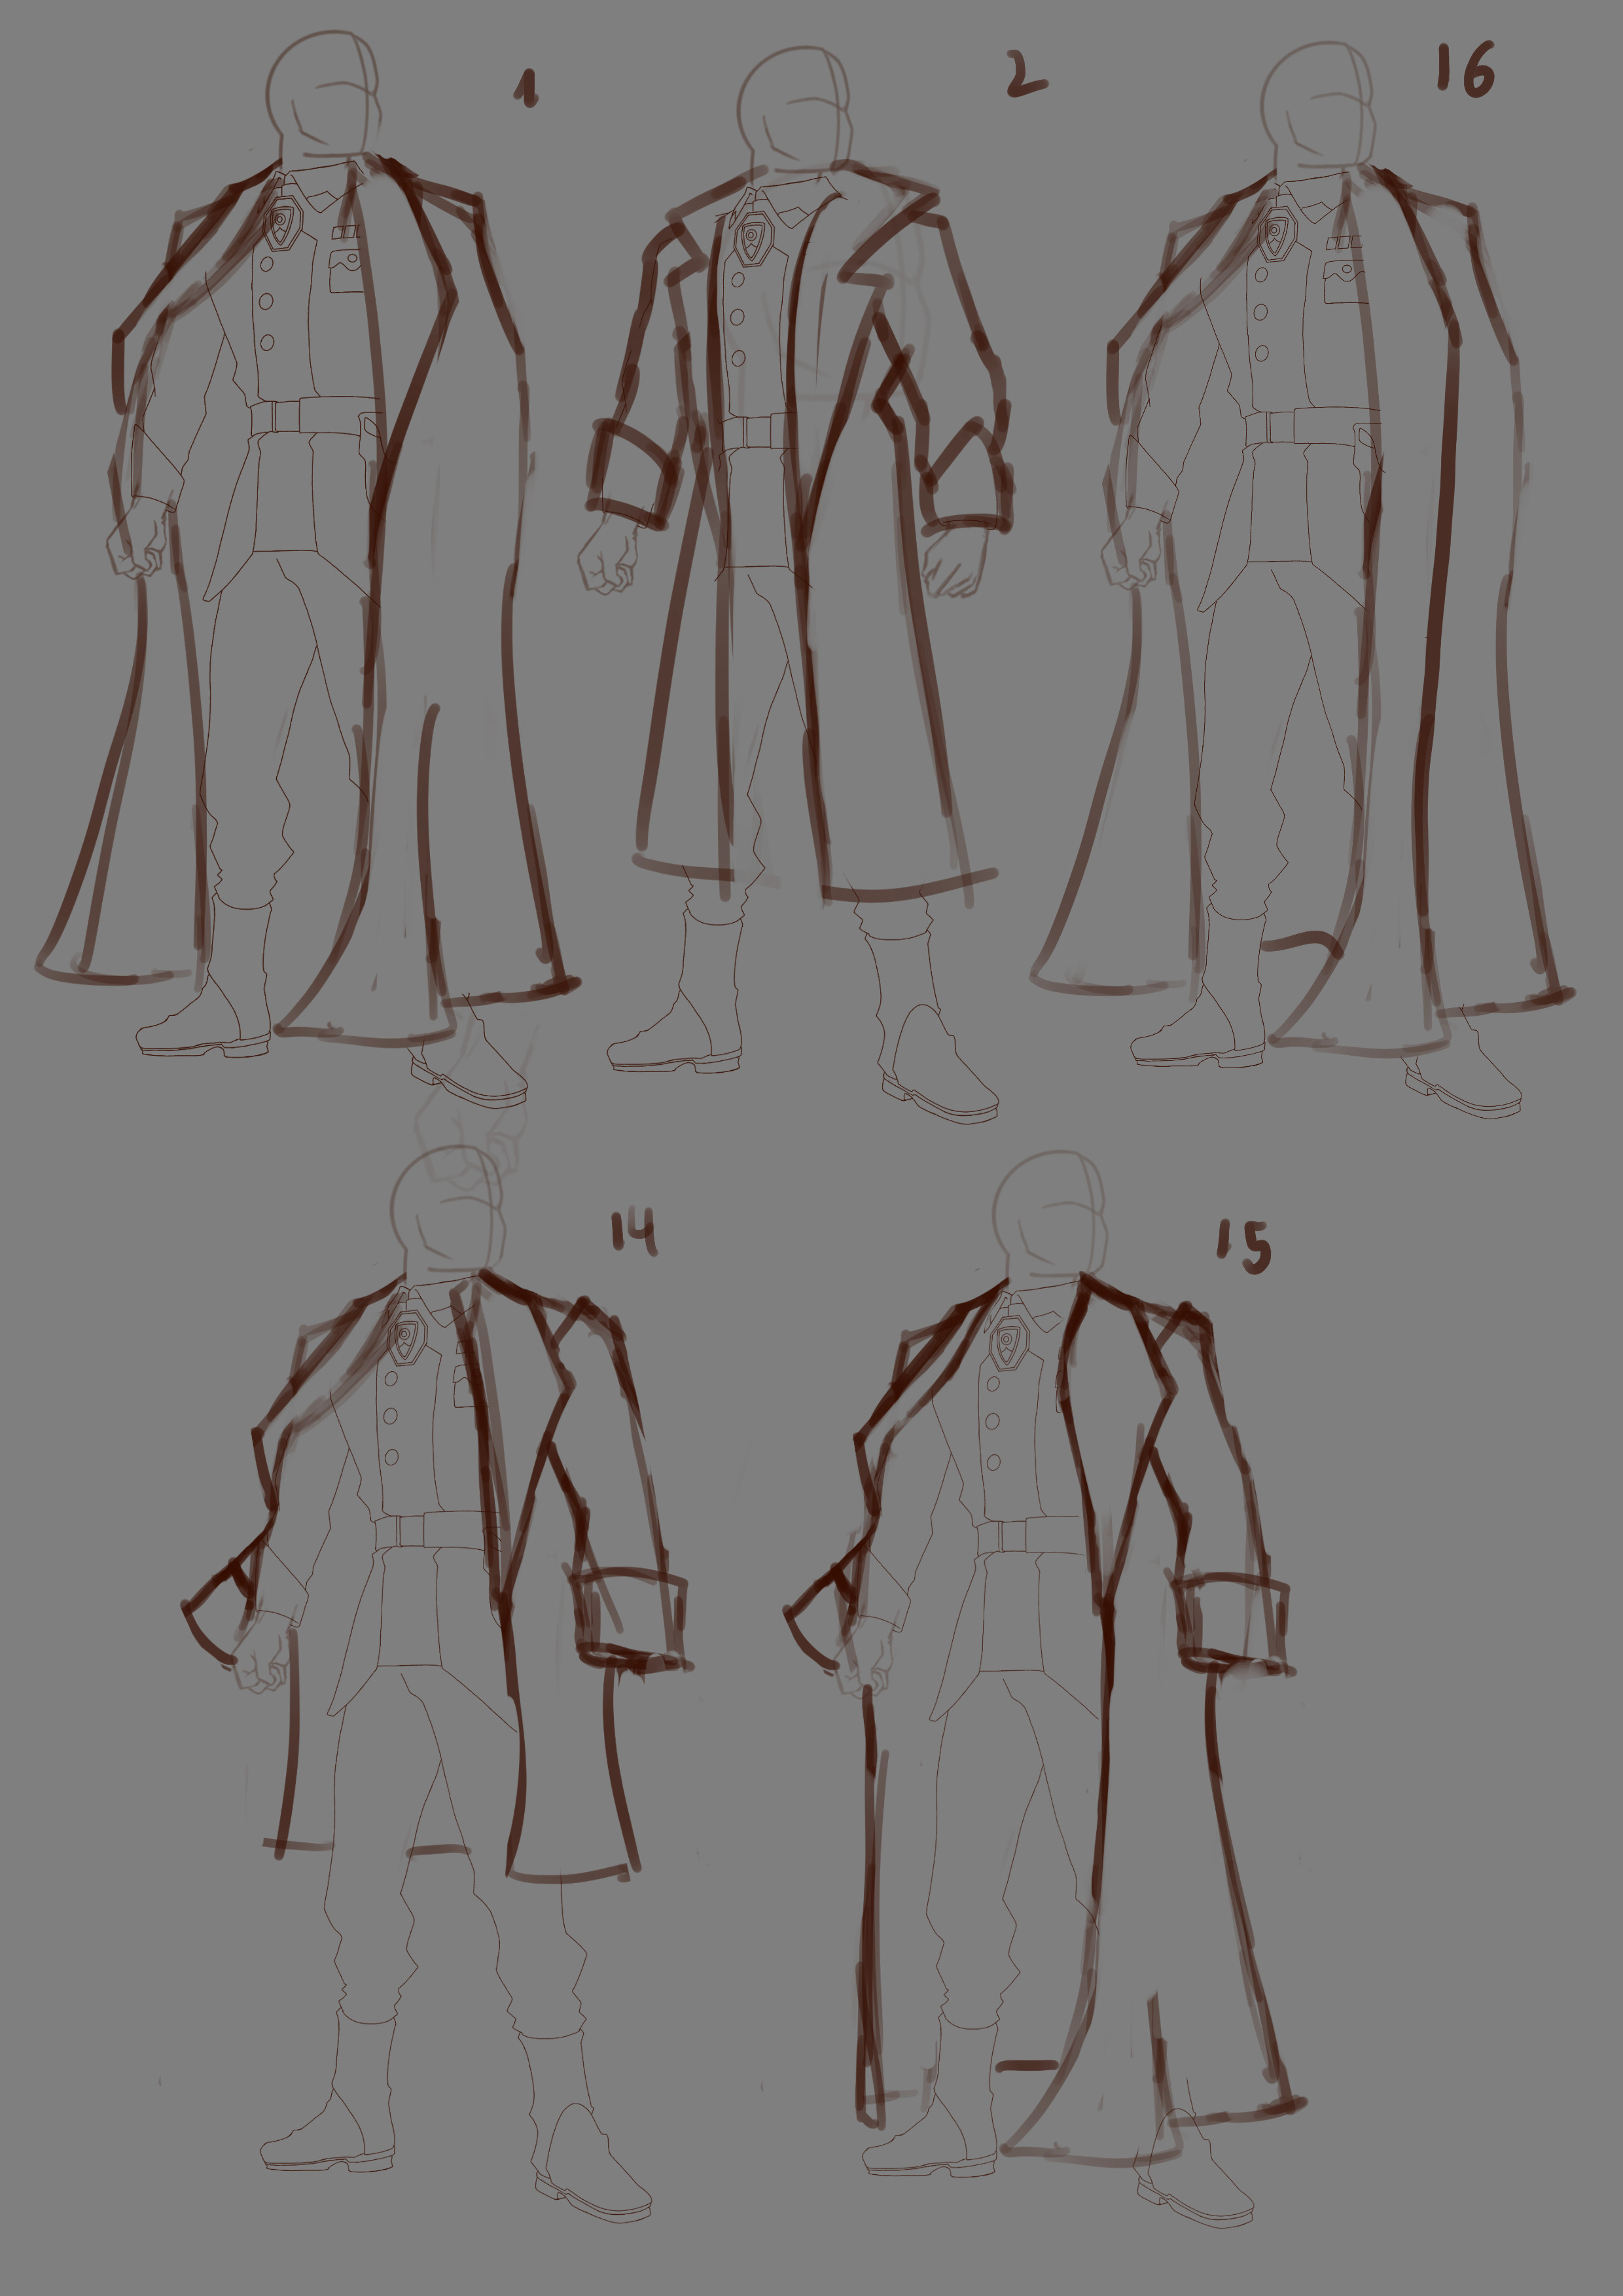 Cape variations